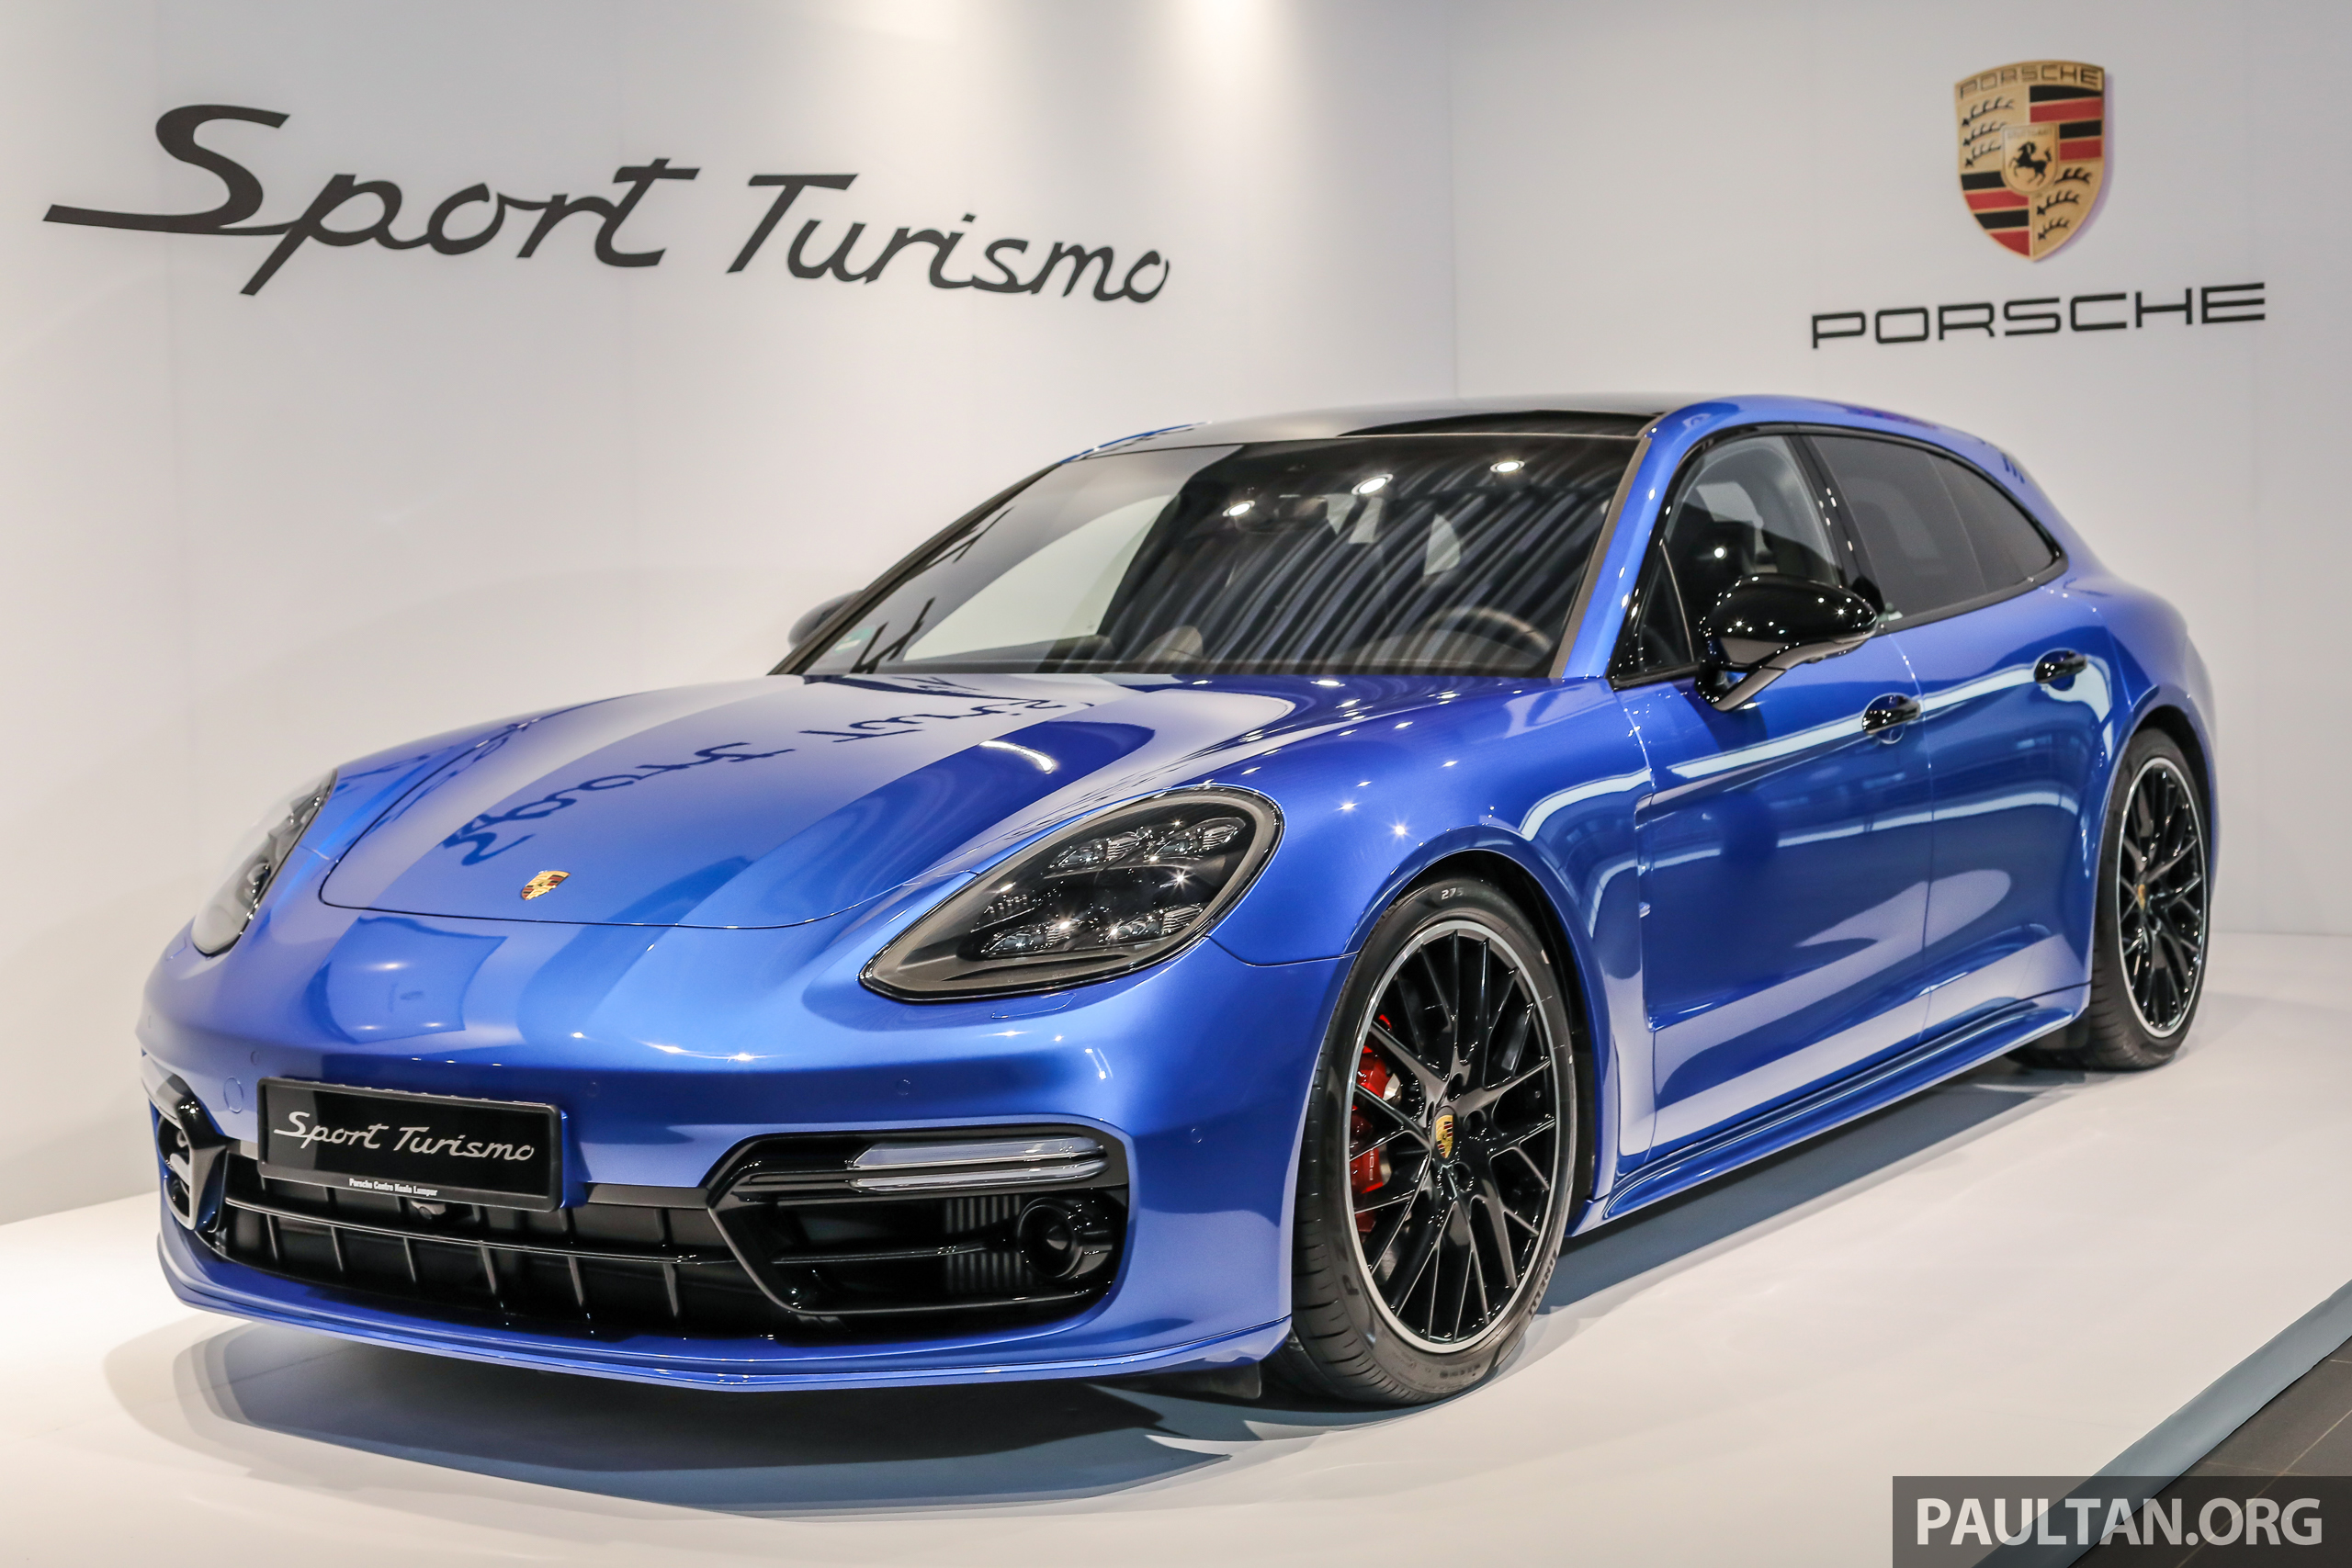 Porsche Panamera Sport Turismo Previewed In M Sia 4 4 E Hybrid And Turbo Models Launch In